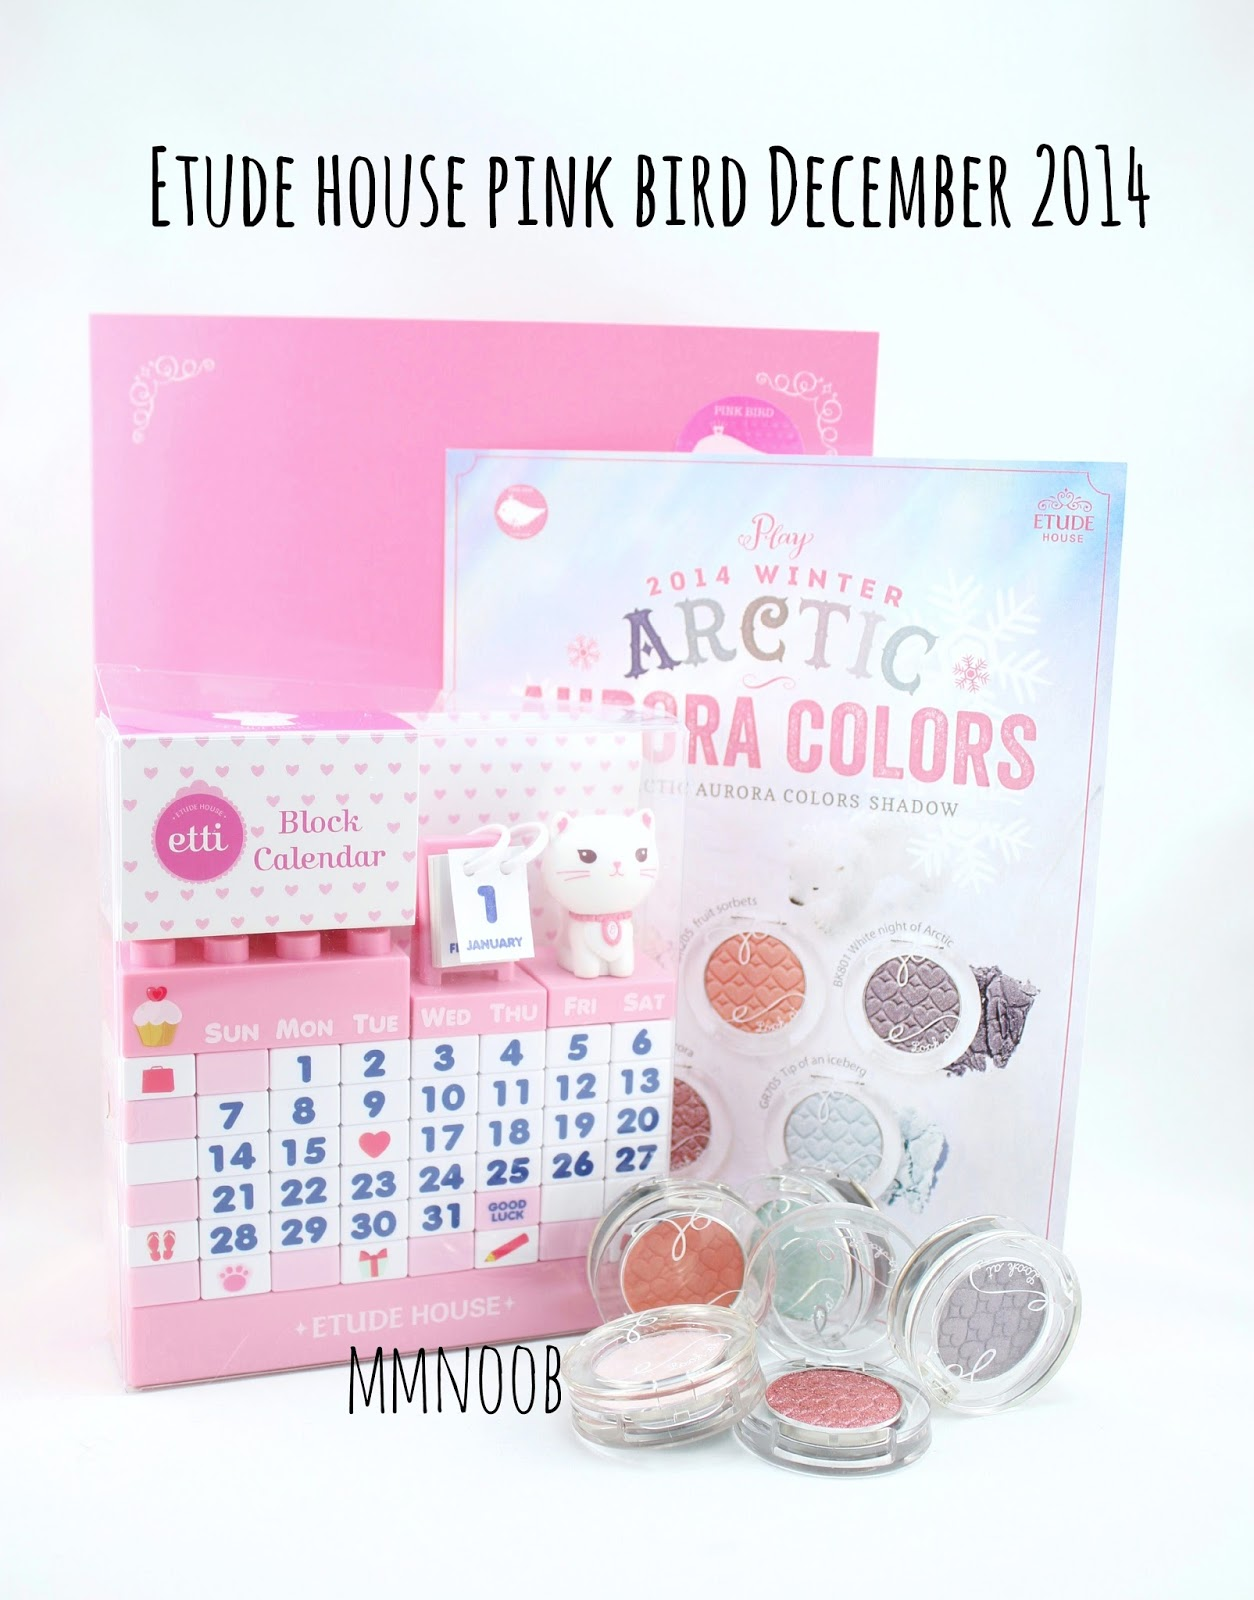 MMnoob: Etude House December 2014 Pink bird box (Feat. Arctic Aurora ...